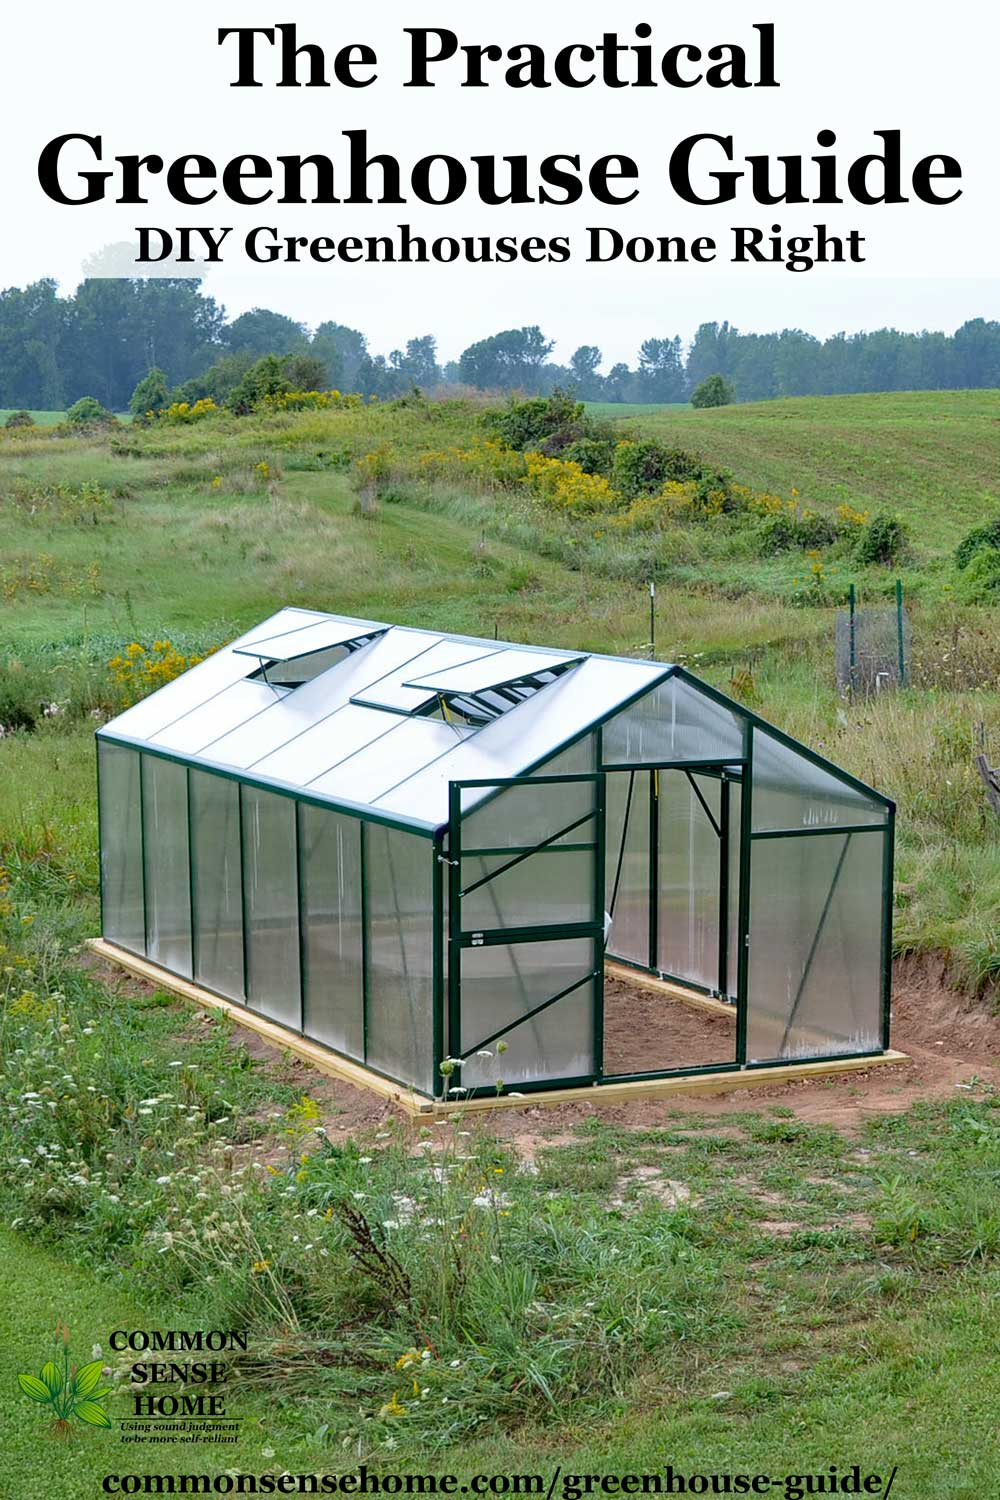 DIY greenhouse built from kit, sitting in green yard